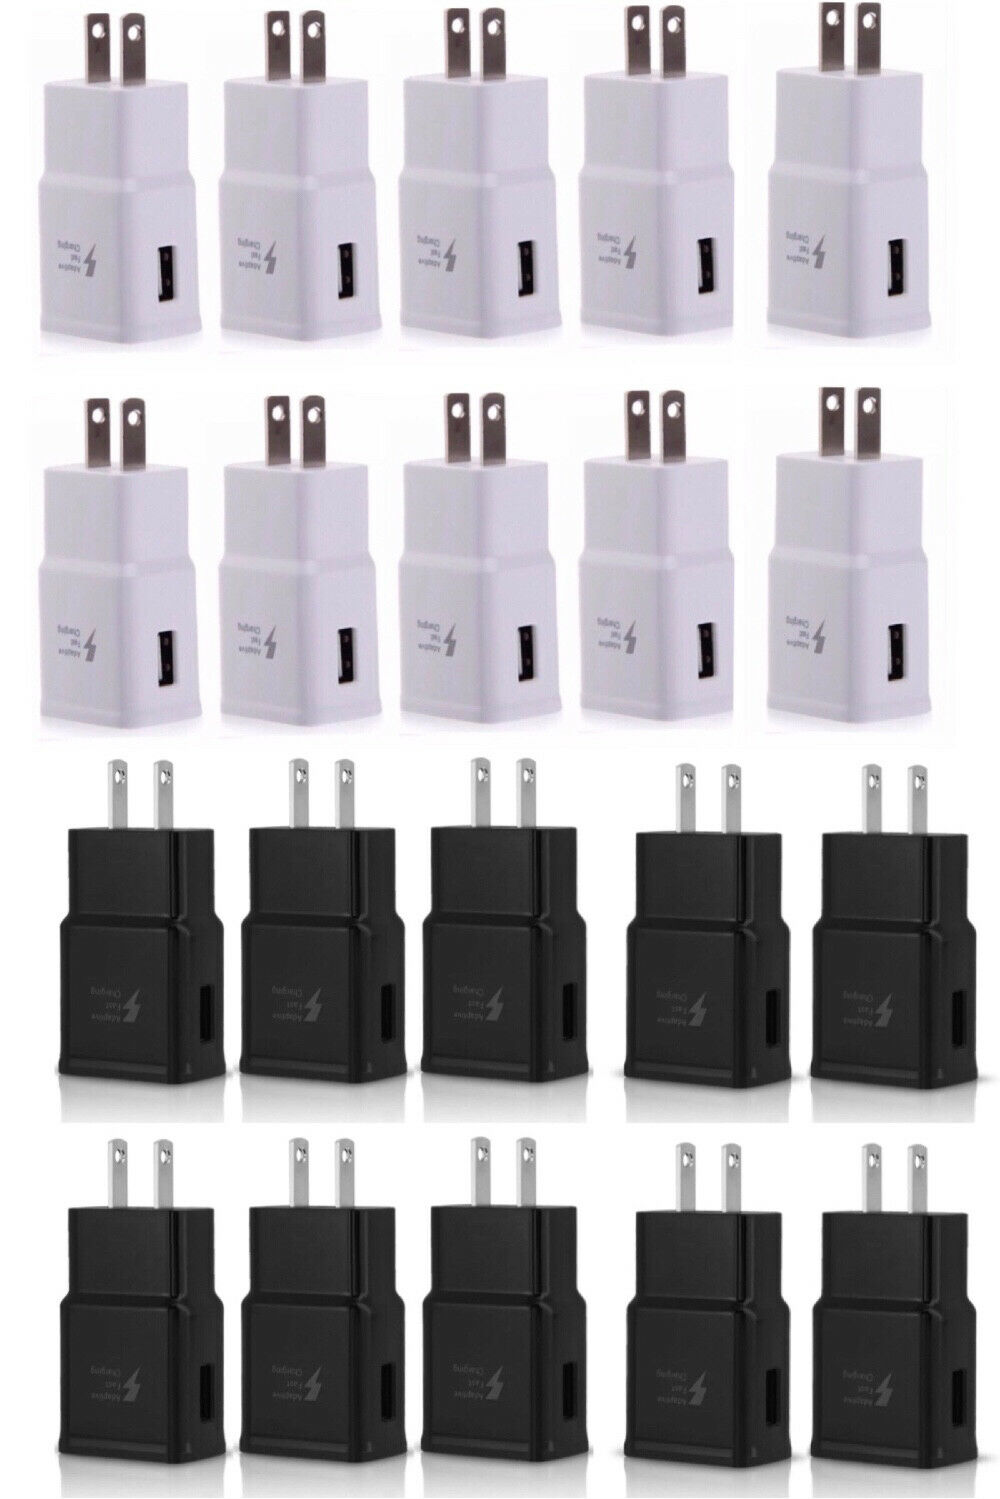 LOT ADAPTIVE FAST CHARGING WALL CHARGER ADAPTER FOR SAMSUNG